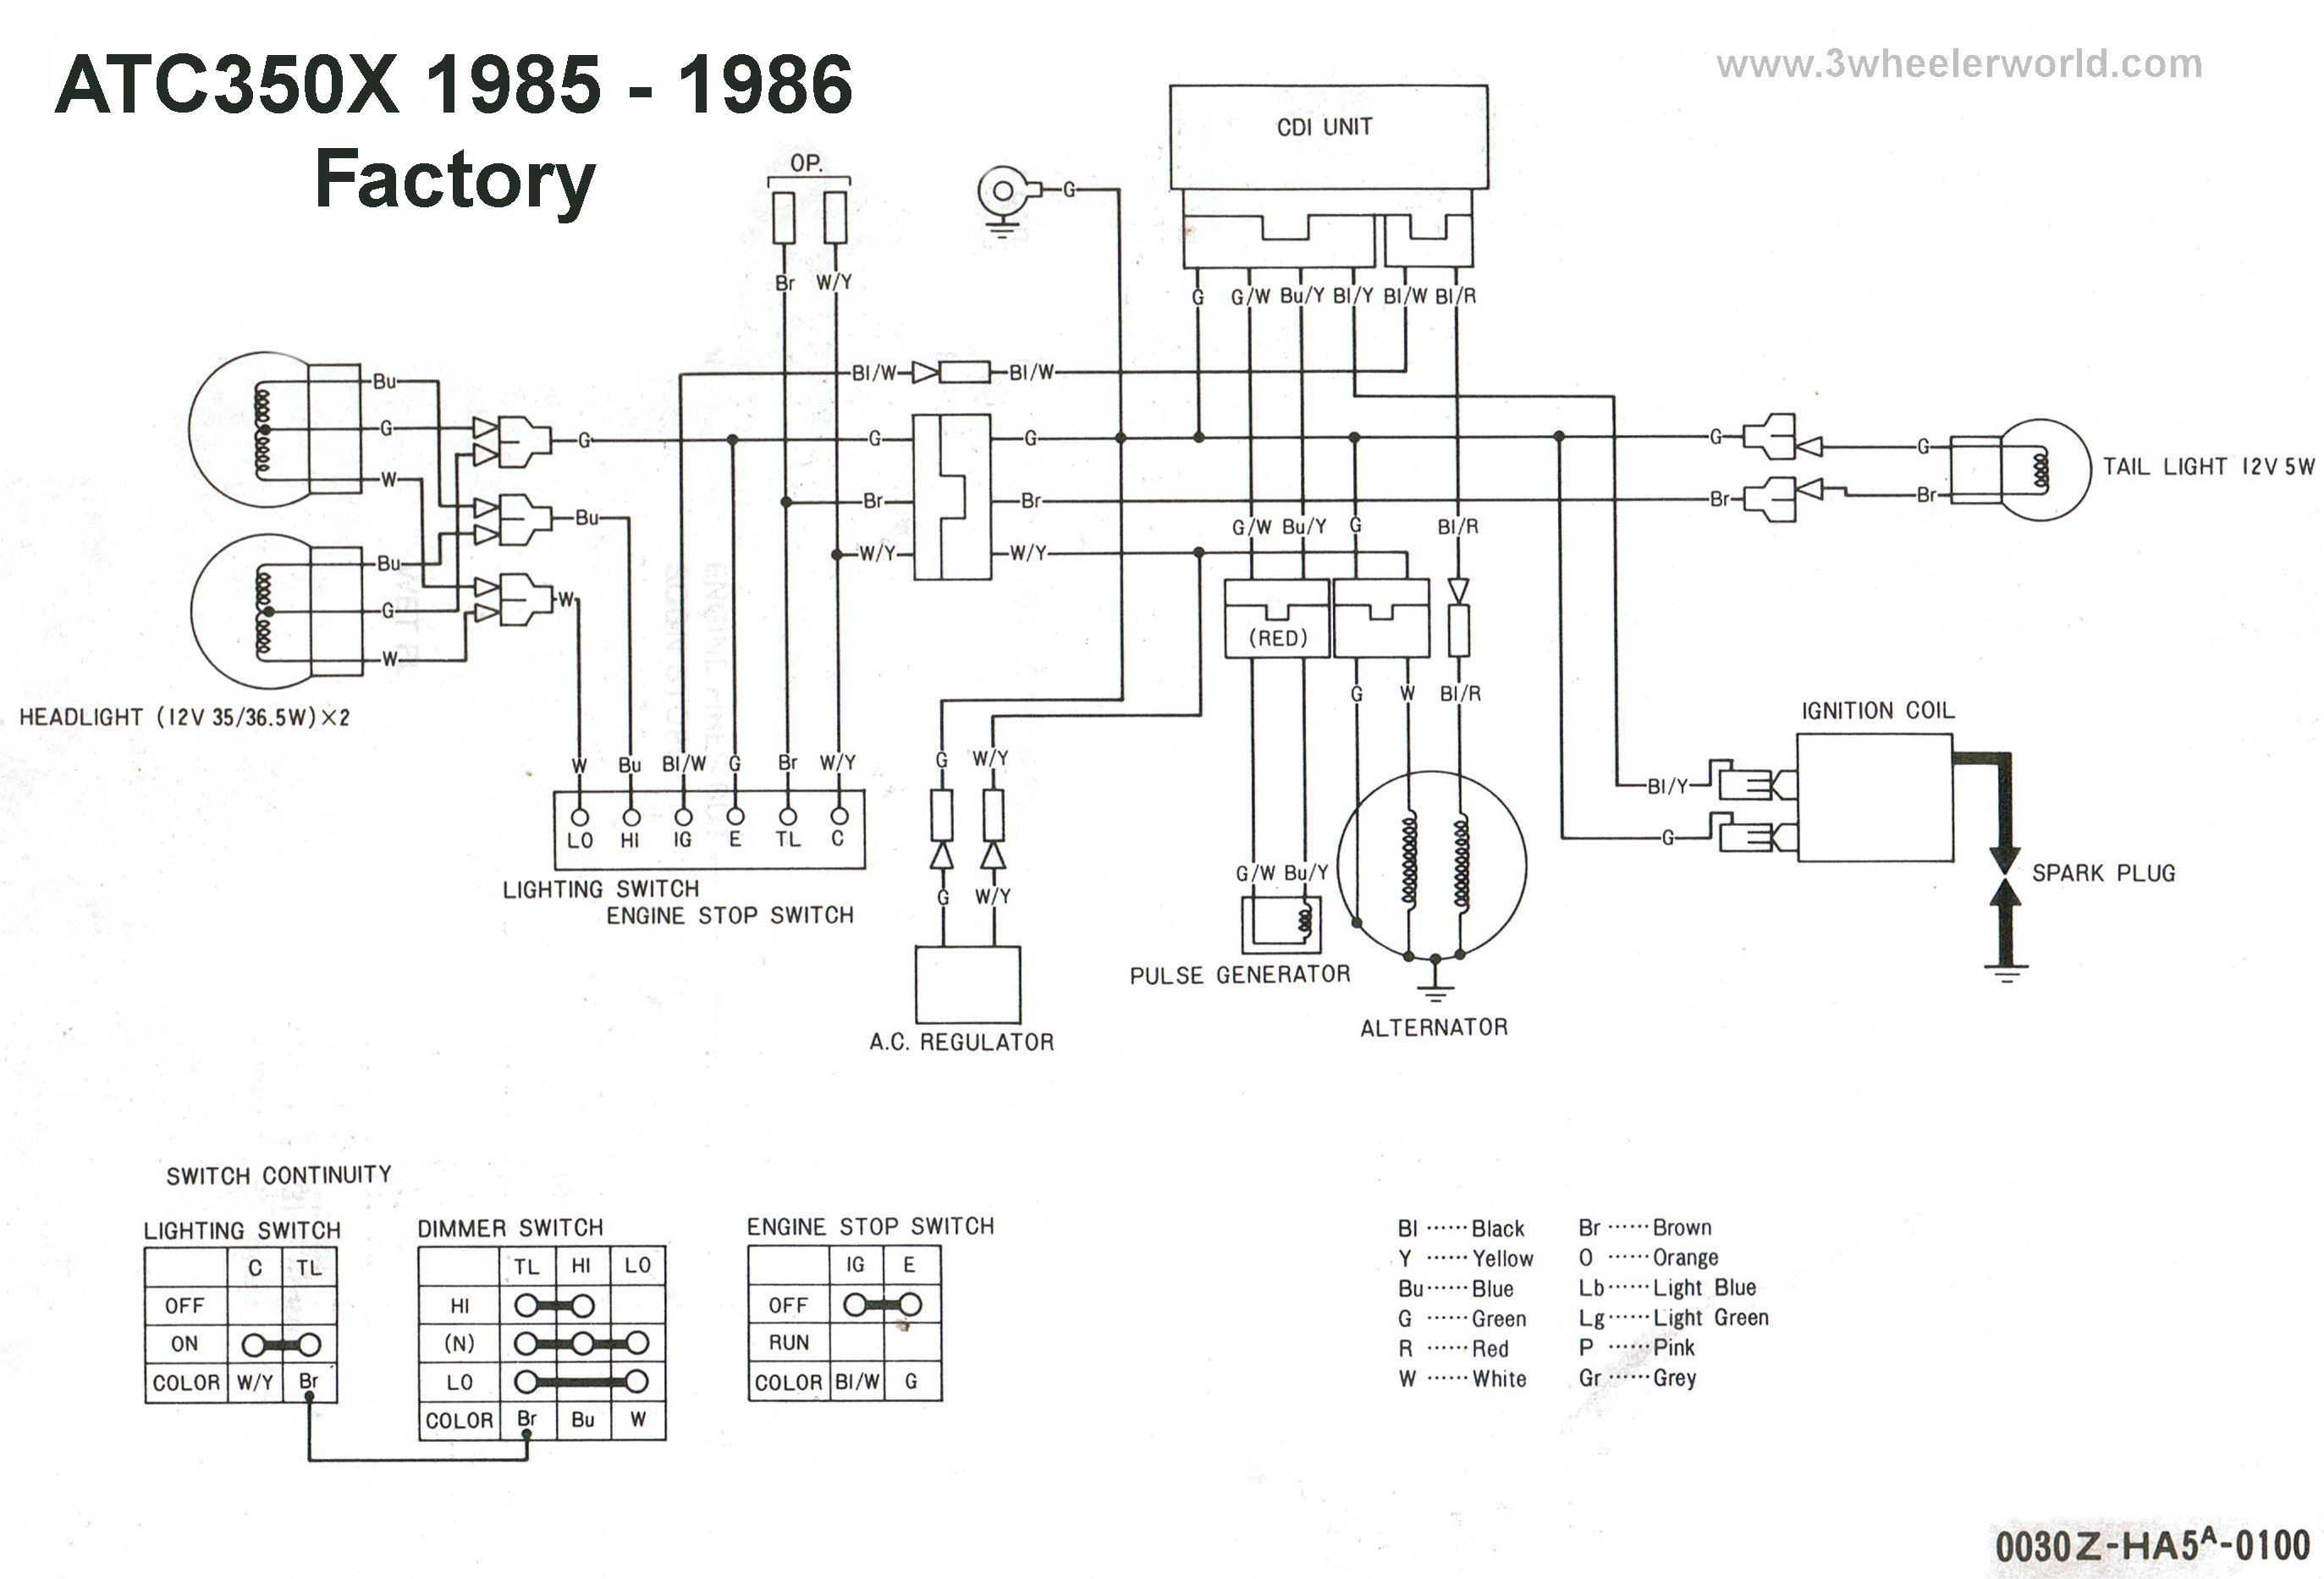 ATC350Xx85Thru86 98 honda fourtrax diagrams wiring diagram simonand atc 300 wiring diagram at edmiracle.co